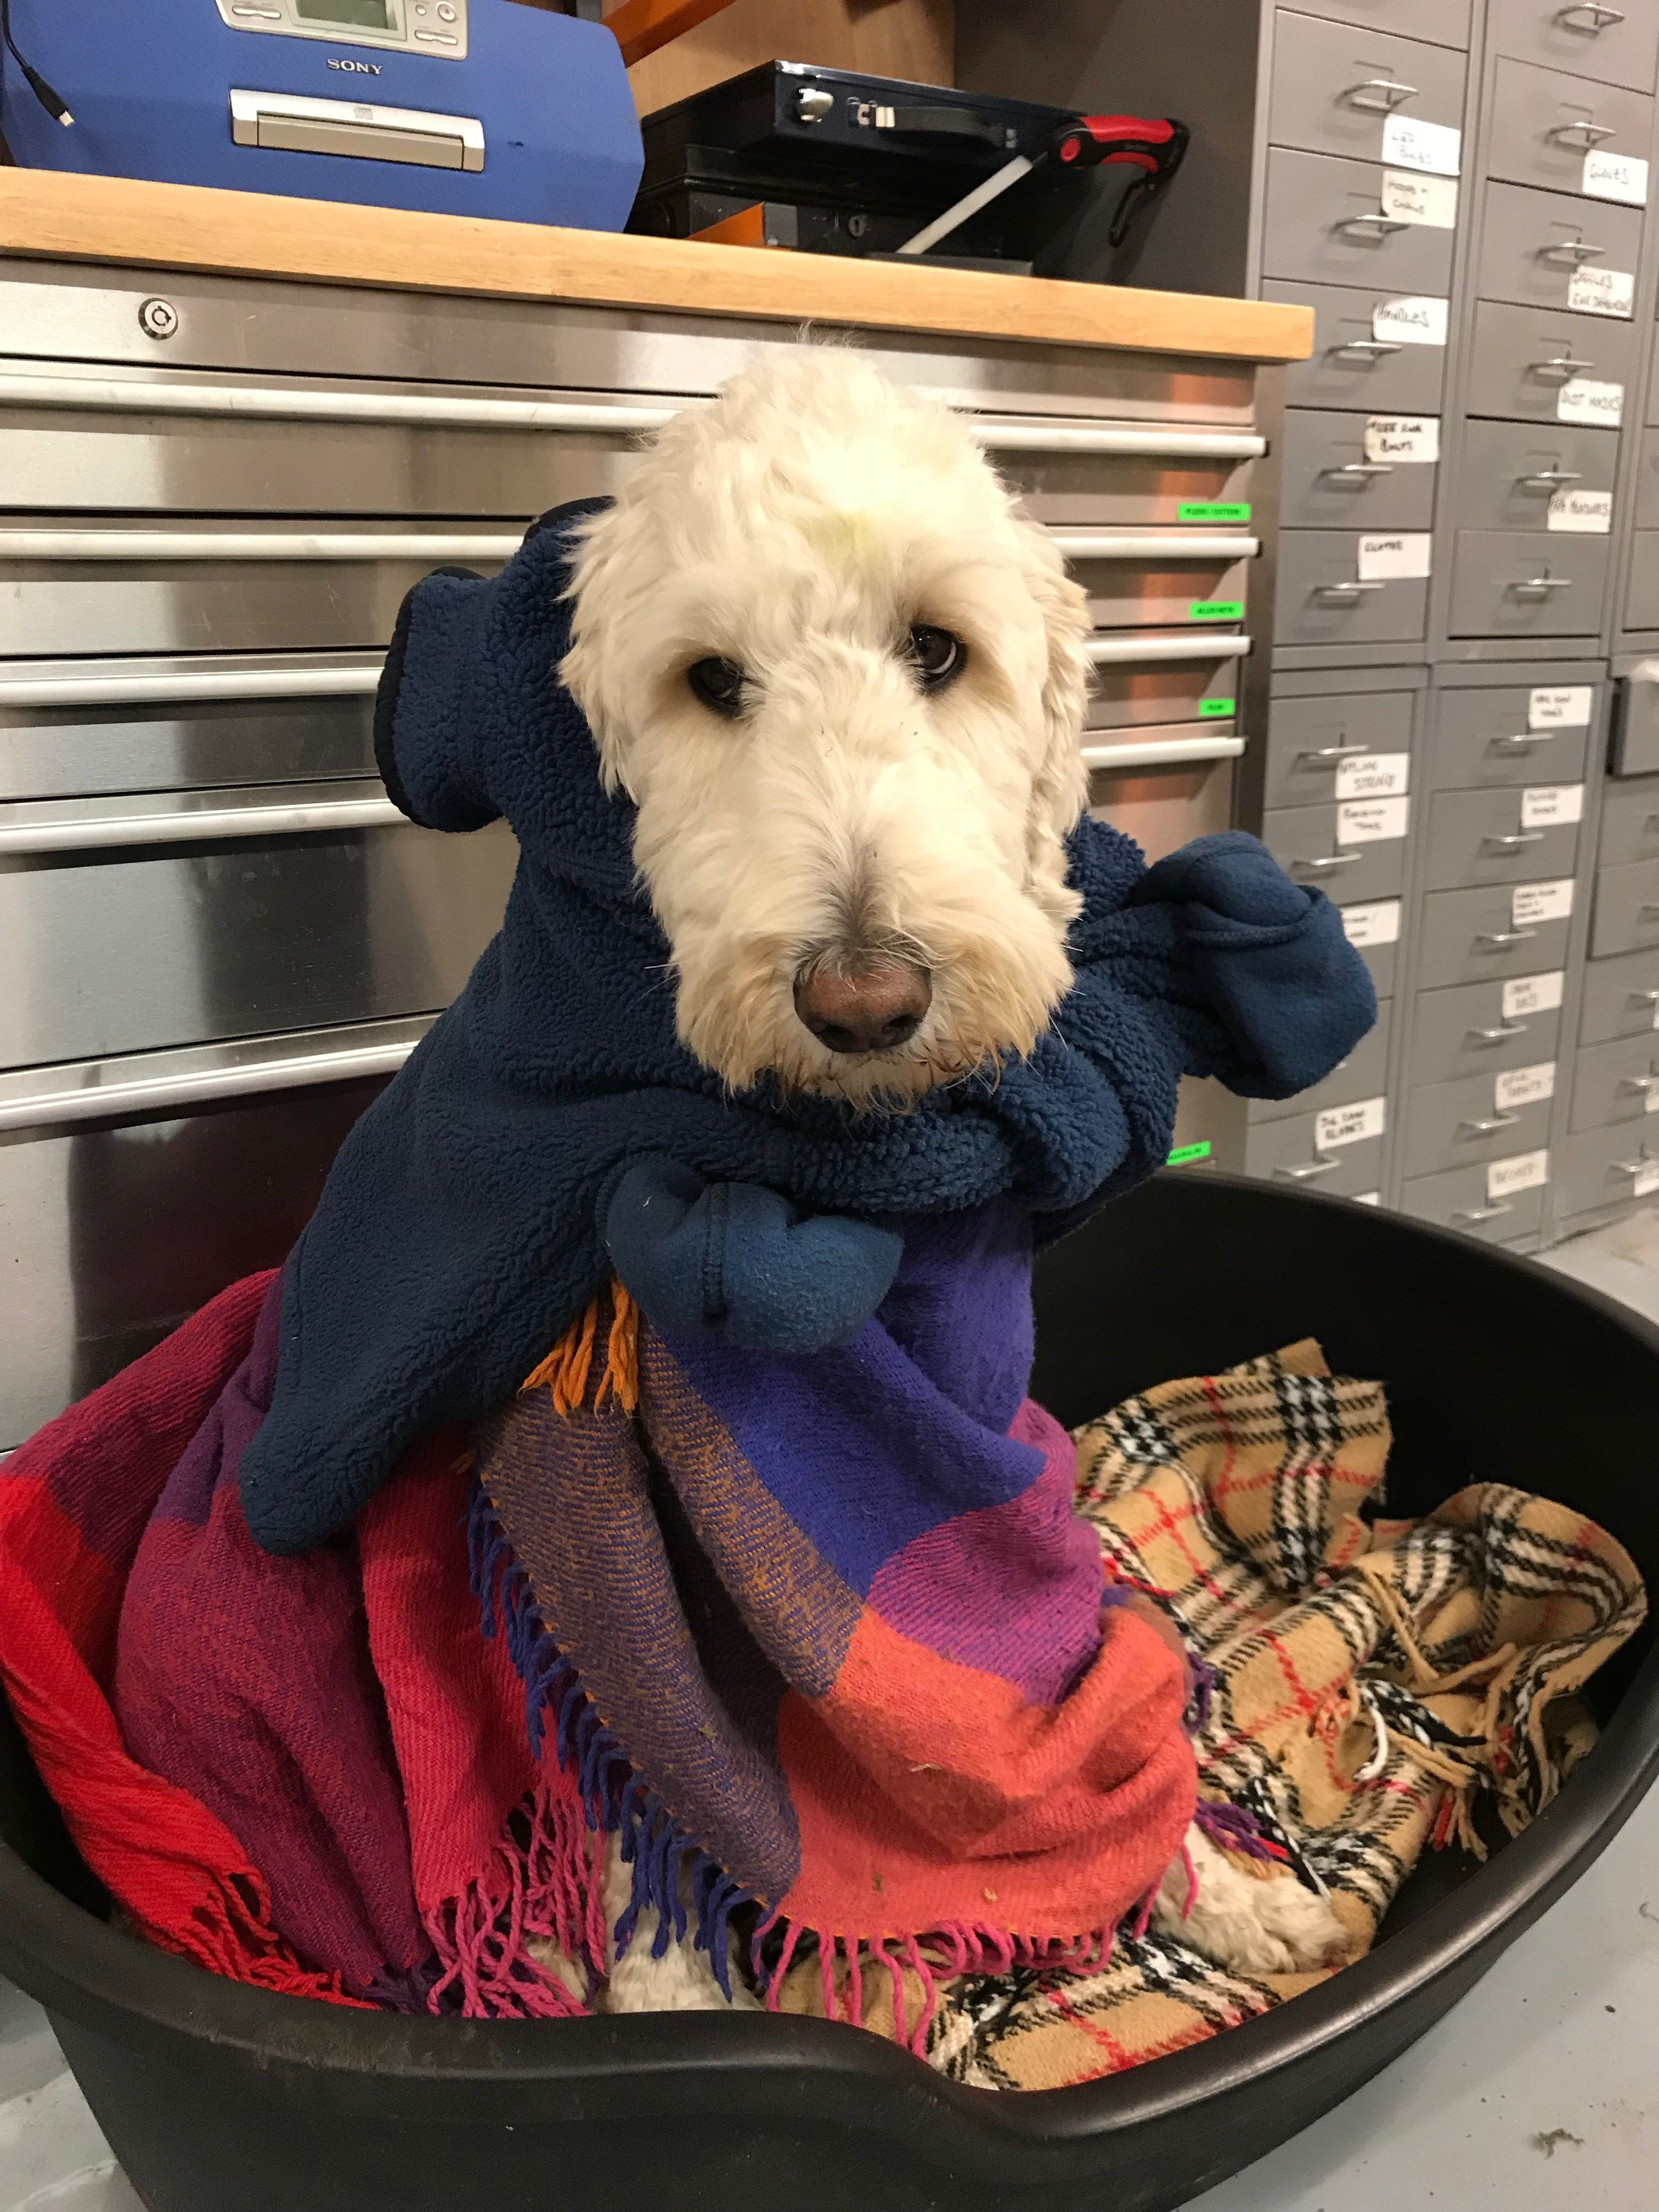 Benji the JK dog, joins in the spirit of 'social distancing' along with Mark in their workshop